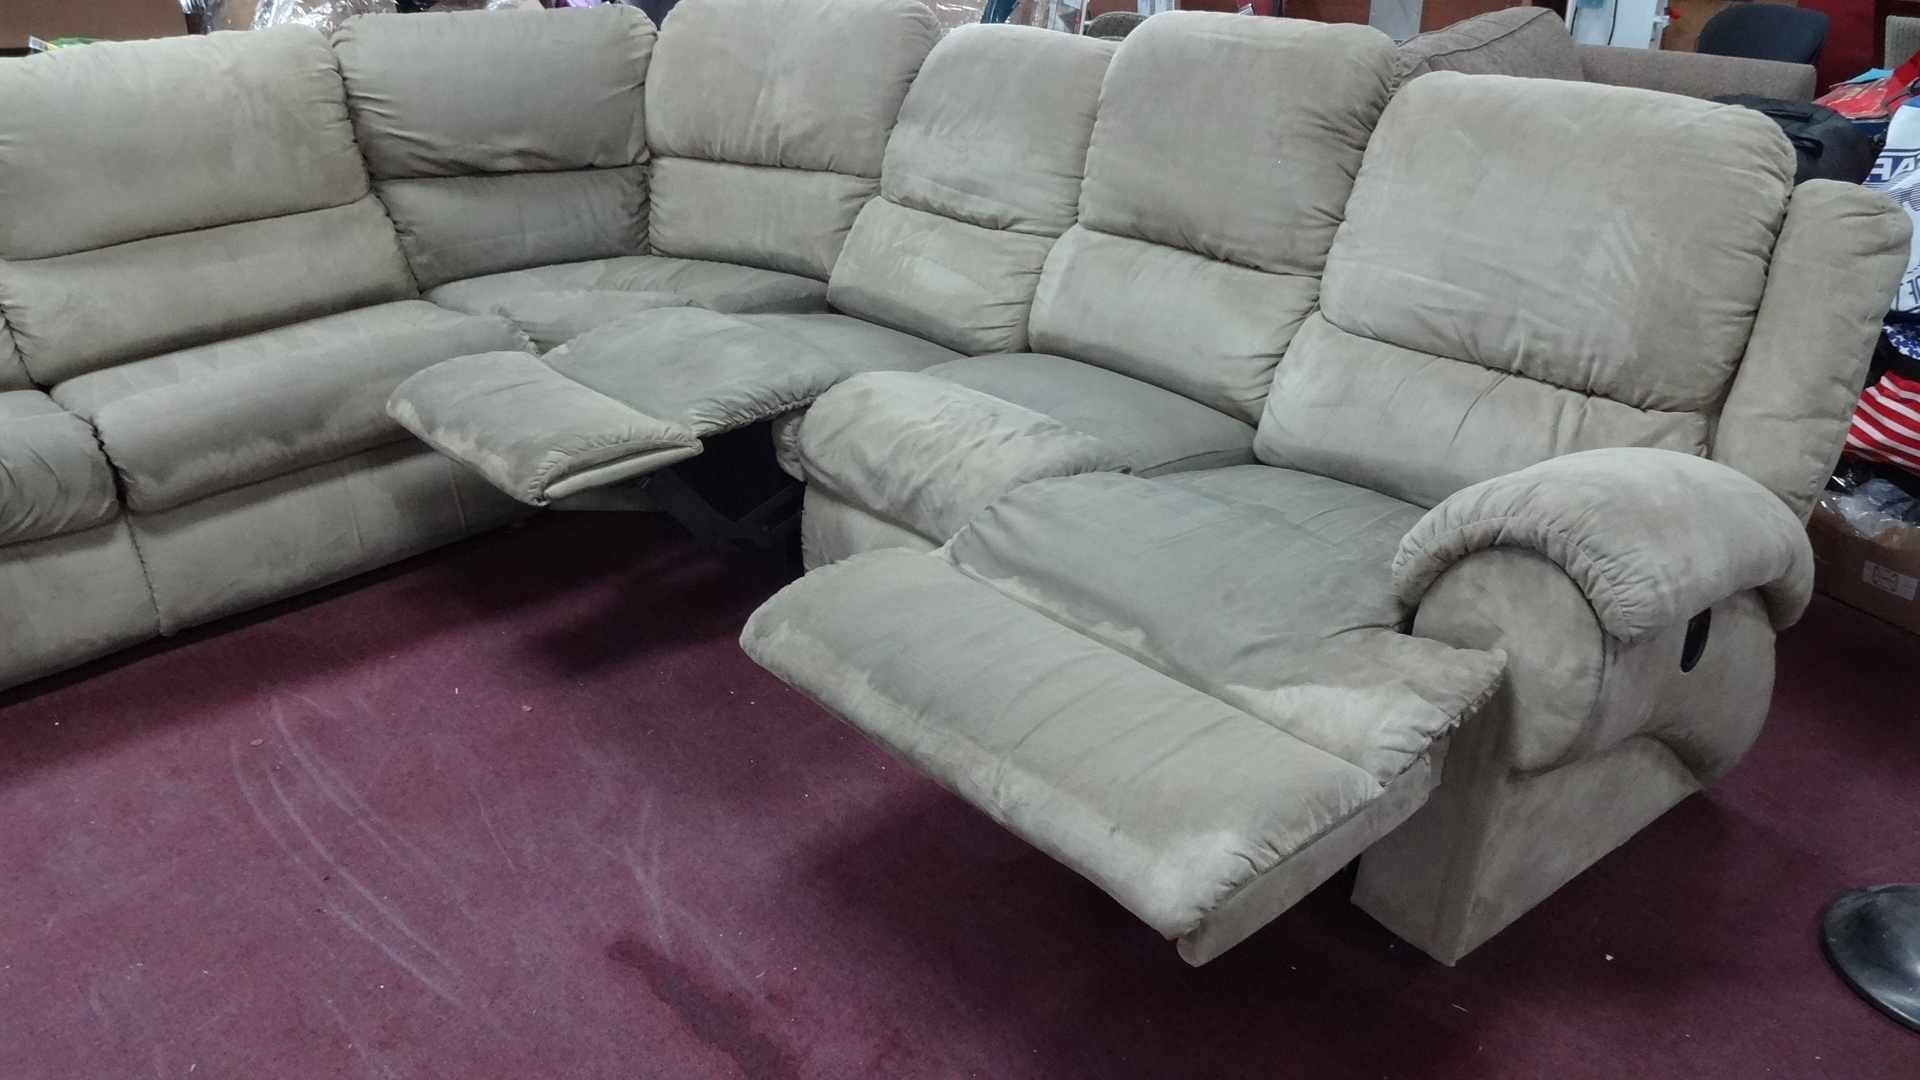 Well Known Sectional Sofas At The Brick Intended For La Z Boy Sectional Sofa Bed • Sofa Bed (View 14 of 15)